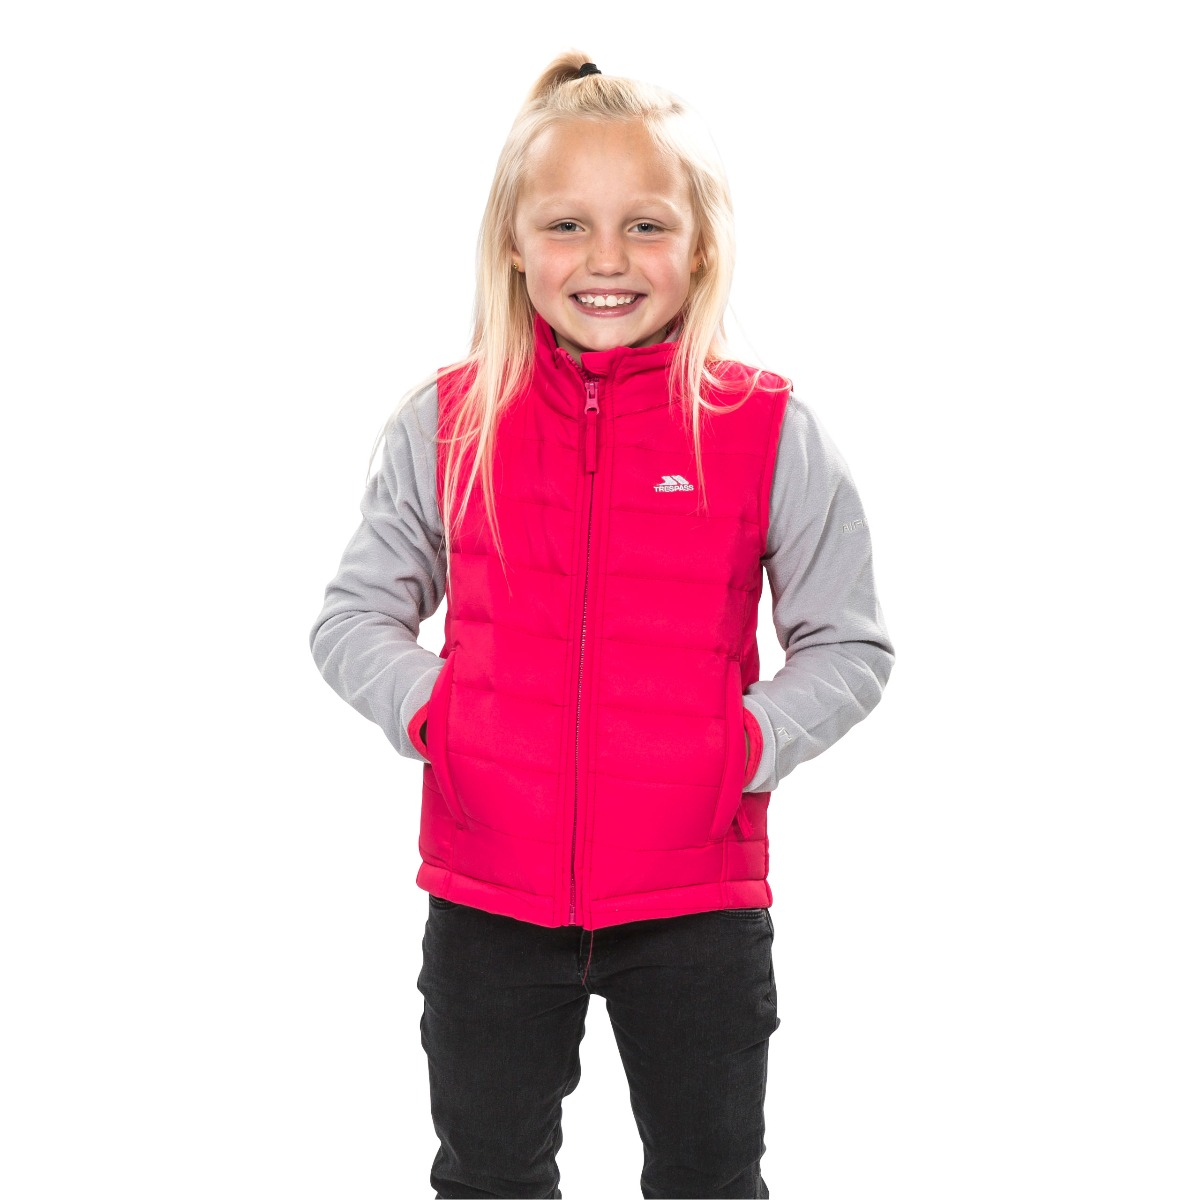 Trespass Jadda Boys Girls Padded Gilet Kids School Body Warmer in Pink /& Navy